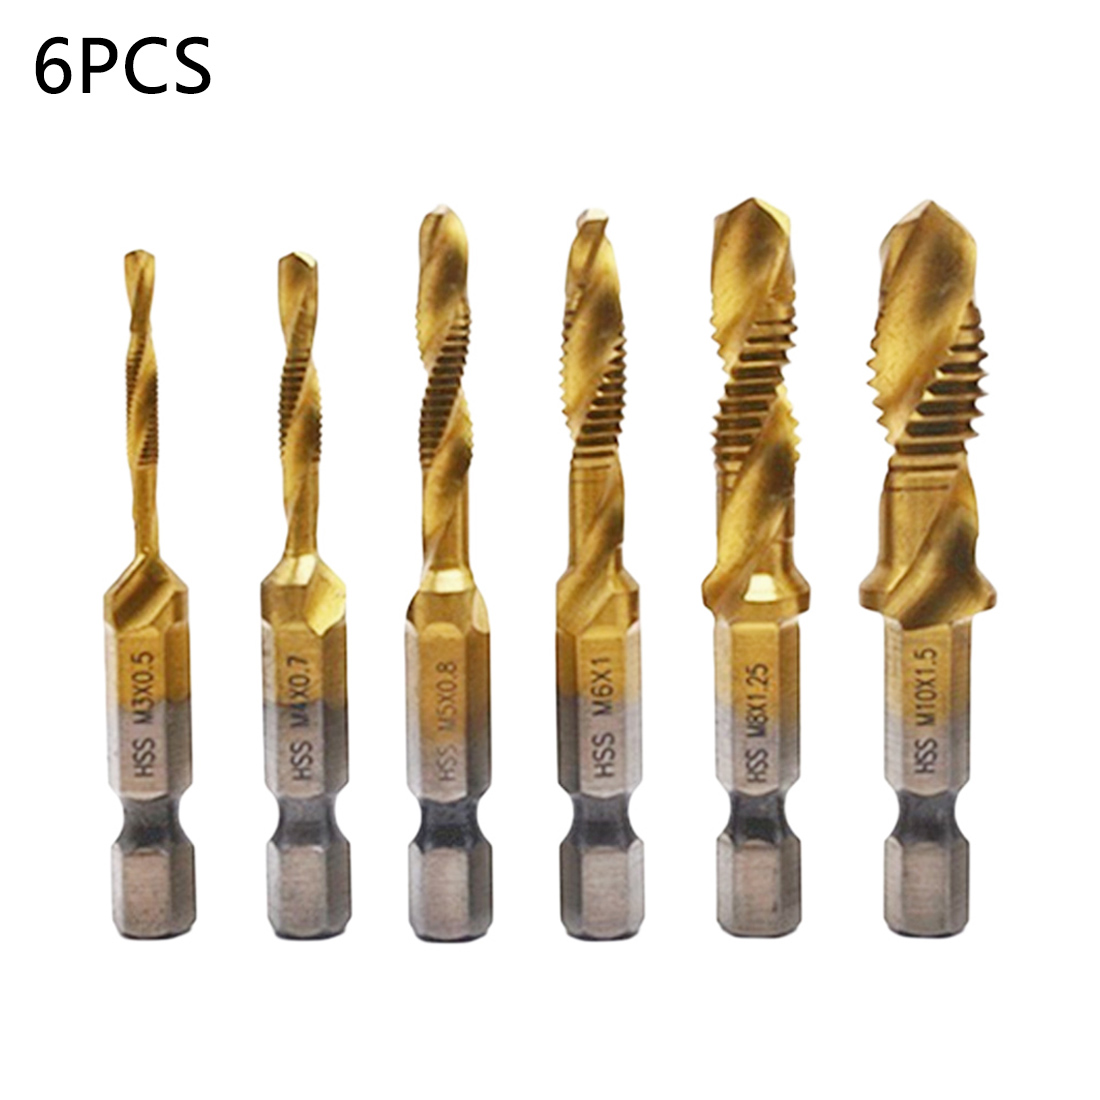 6pcs/set 1/4'' Hex Shank HSS High Speed Steel Thread Spiral Screw Metric Composite Tap Drill Bit Set Tap M3 M4 M5 M6 M8 M10